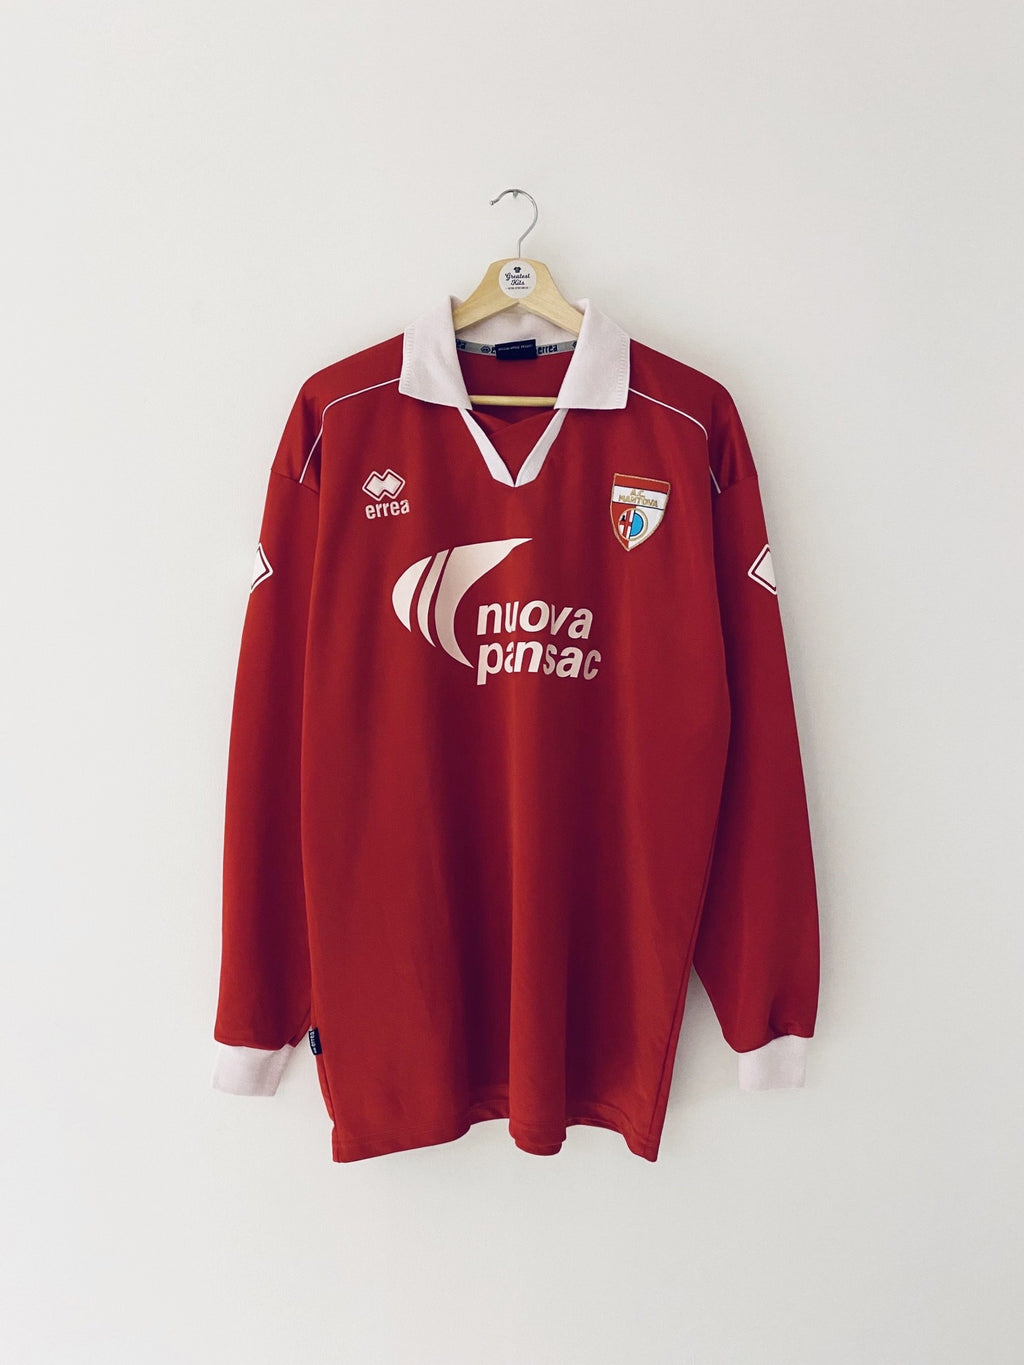 2004/05 Mantova Home L/S Shirt #16 (XXL) 8/10